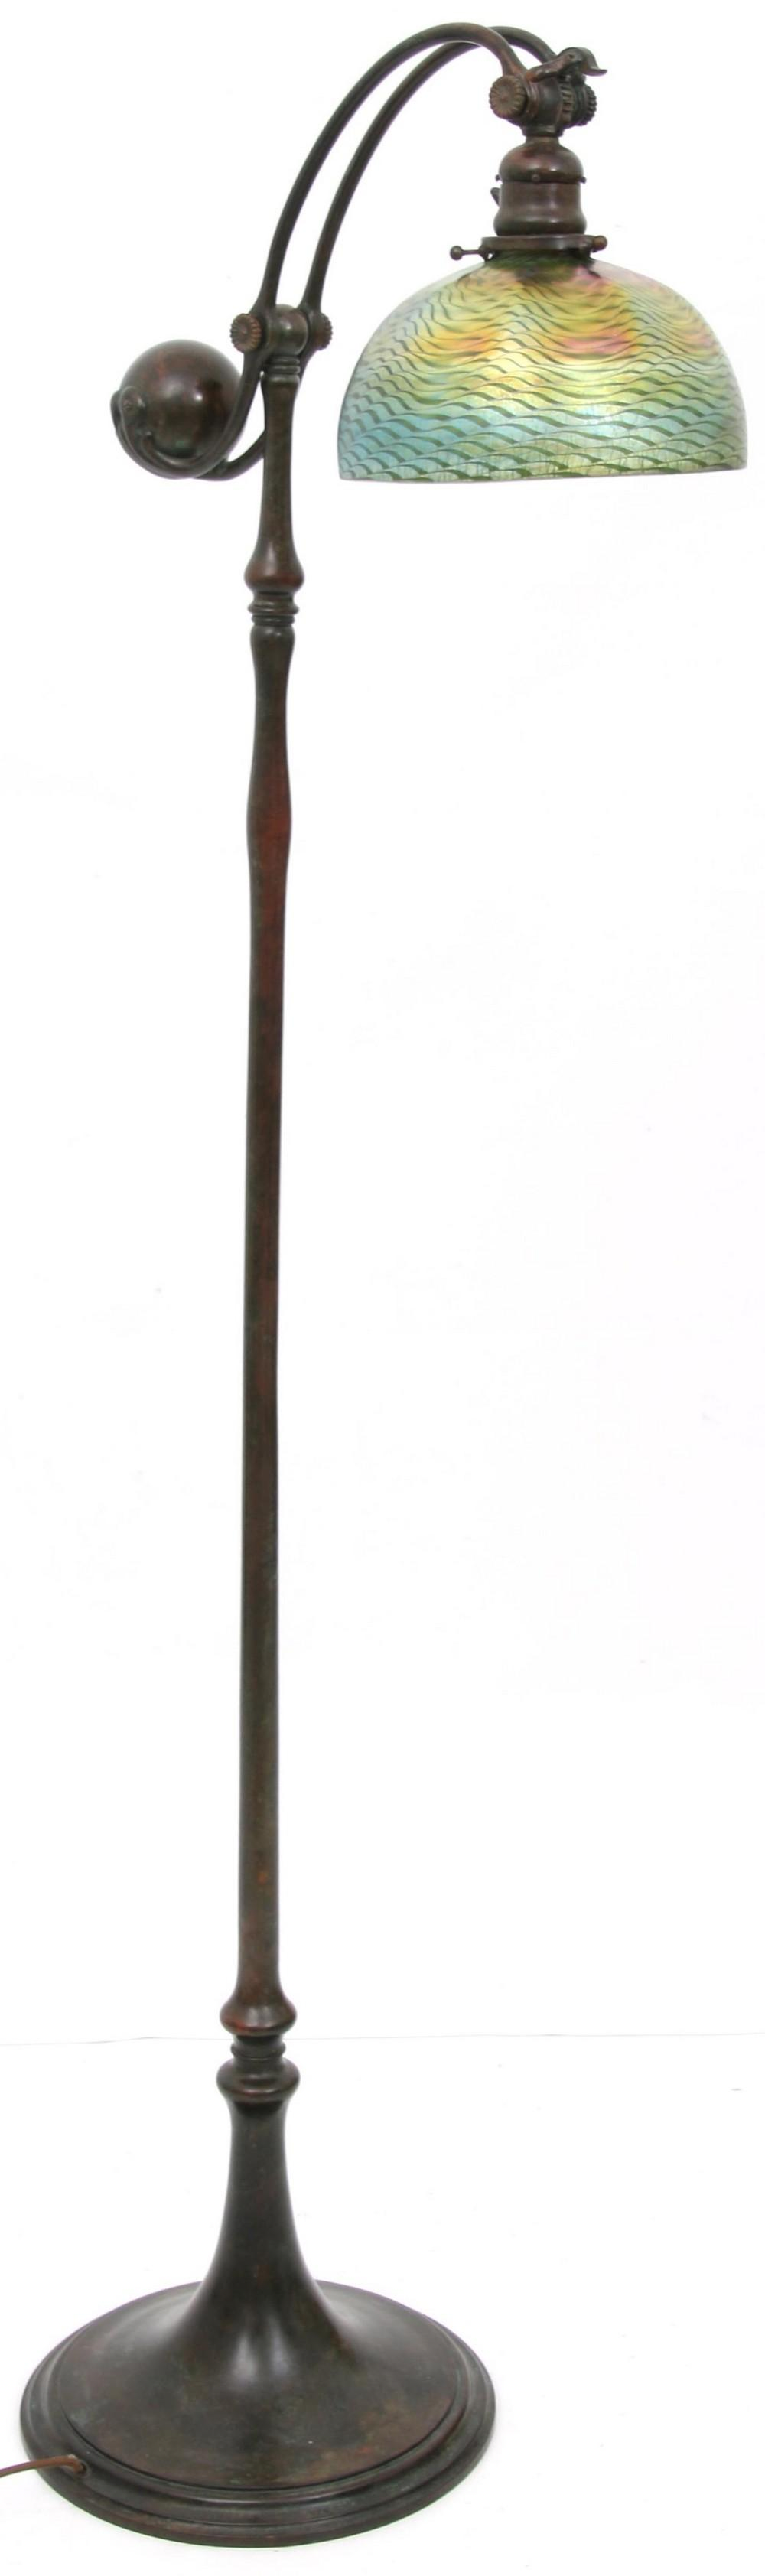 Tiffany Studios Counterbalance Floor Lamp